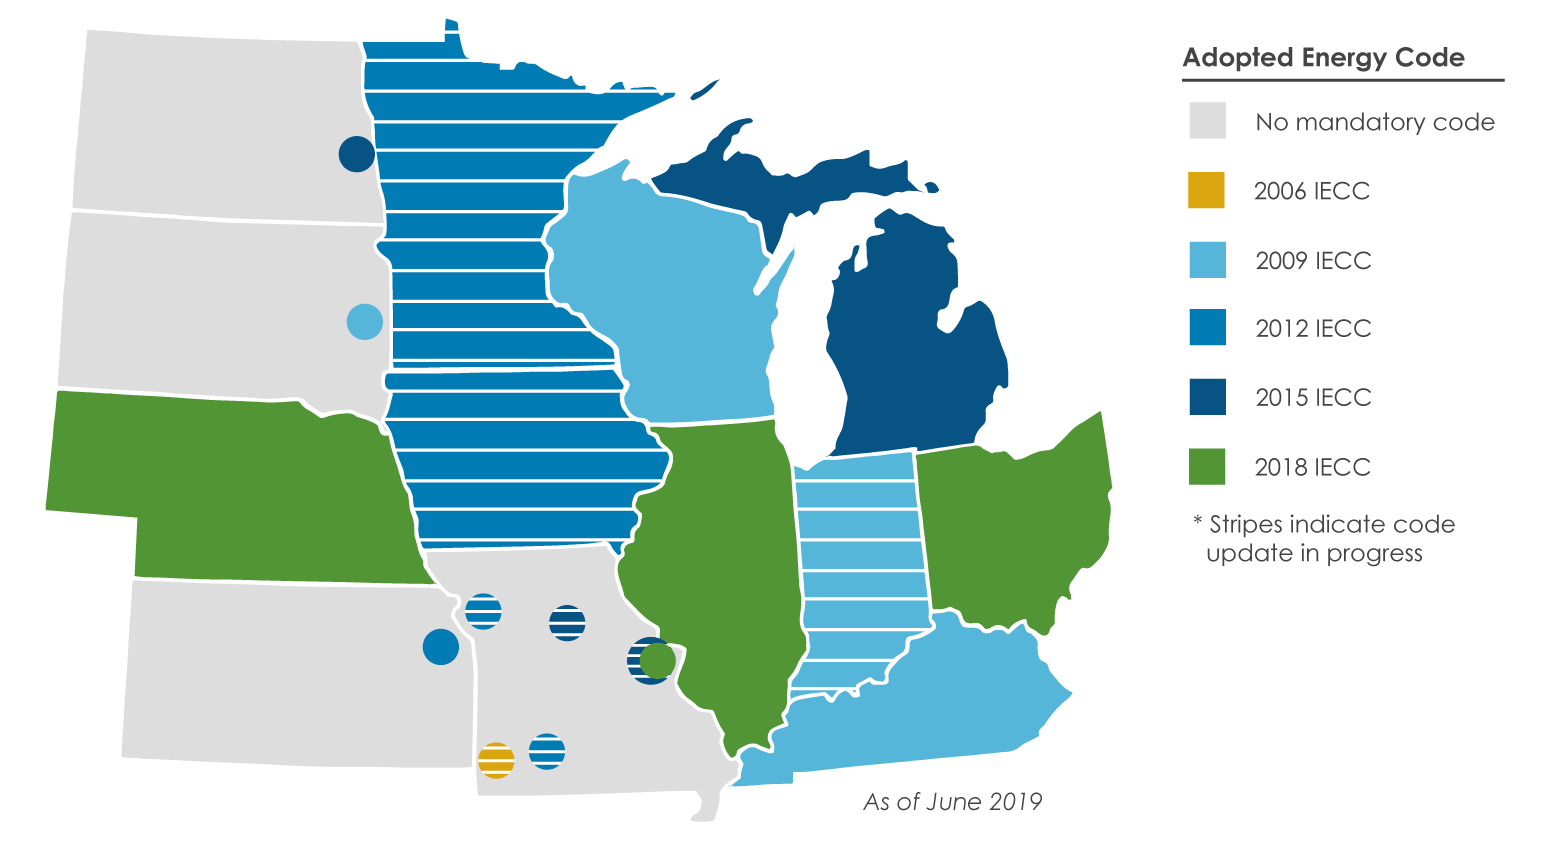 map of Midwest residential energy code level as of 6.24.19